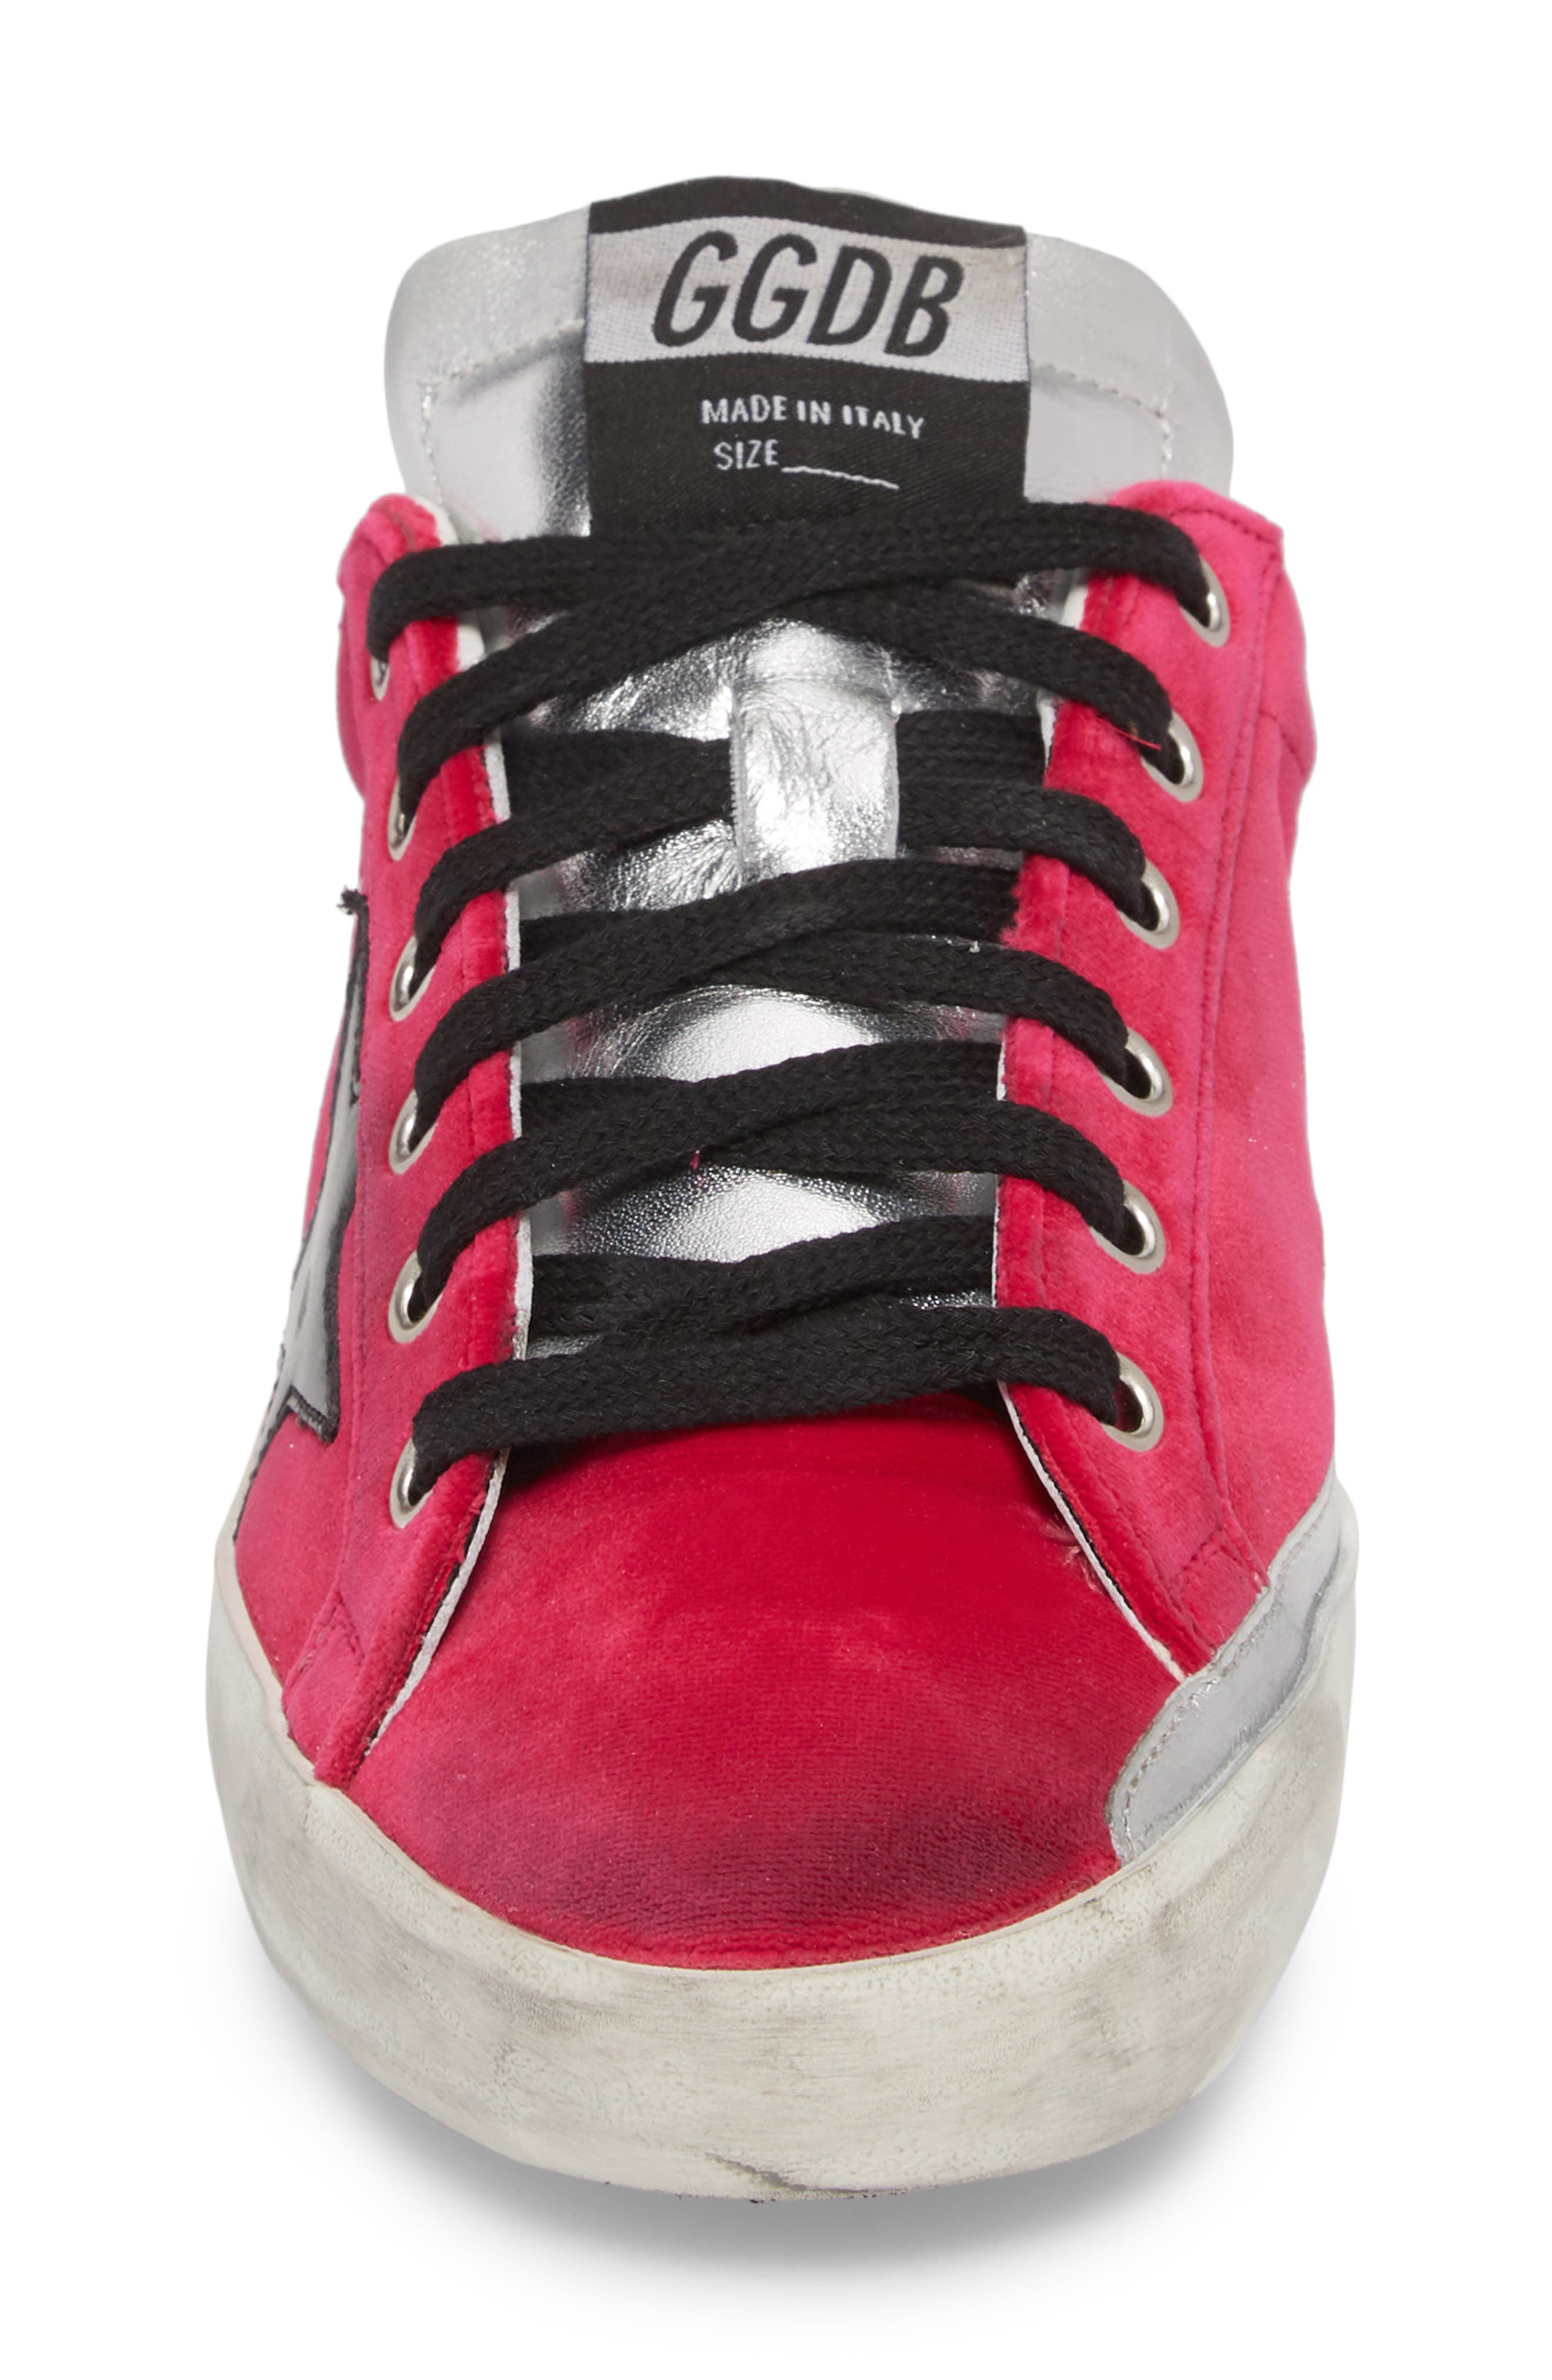 Superstar Low Top Sneaker,                             Alternate thumbnail 4, color,                             FUCHSIA/ BLACK